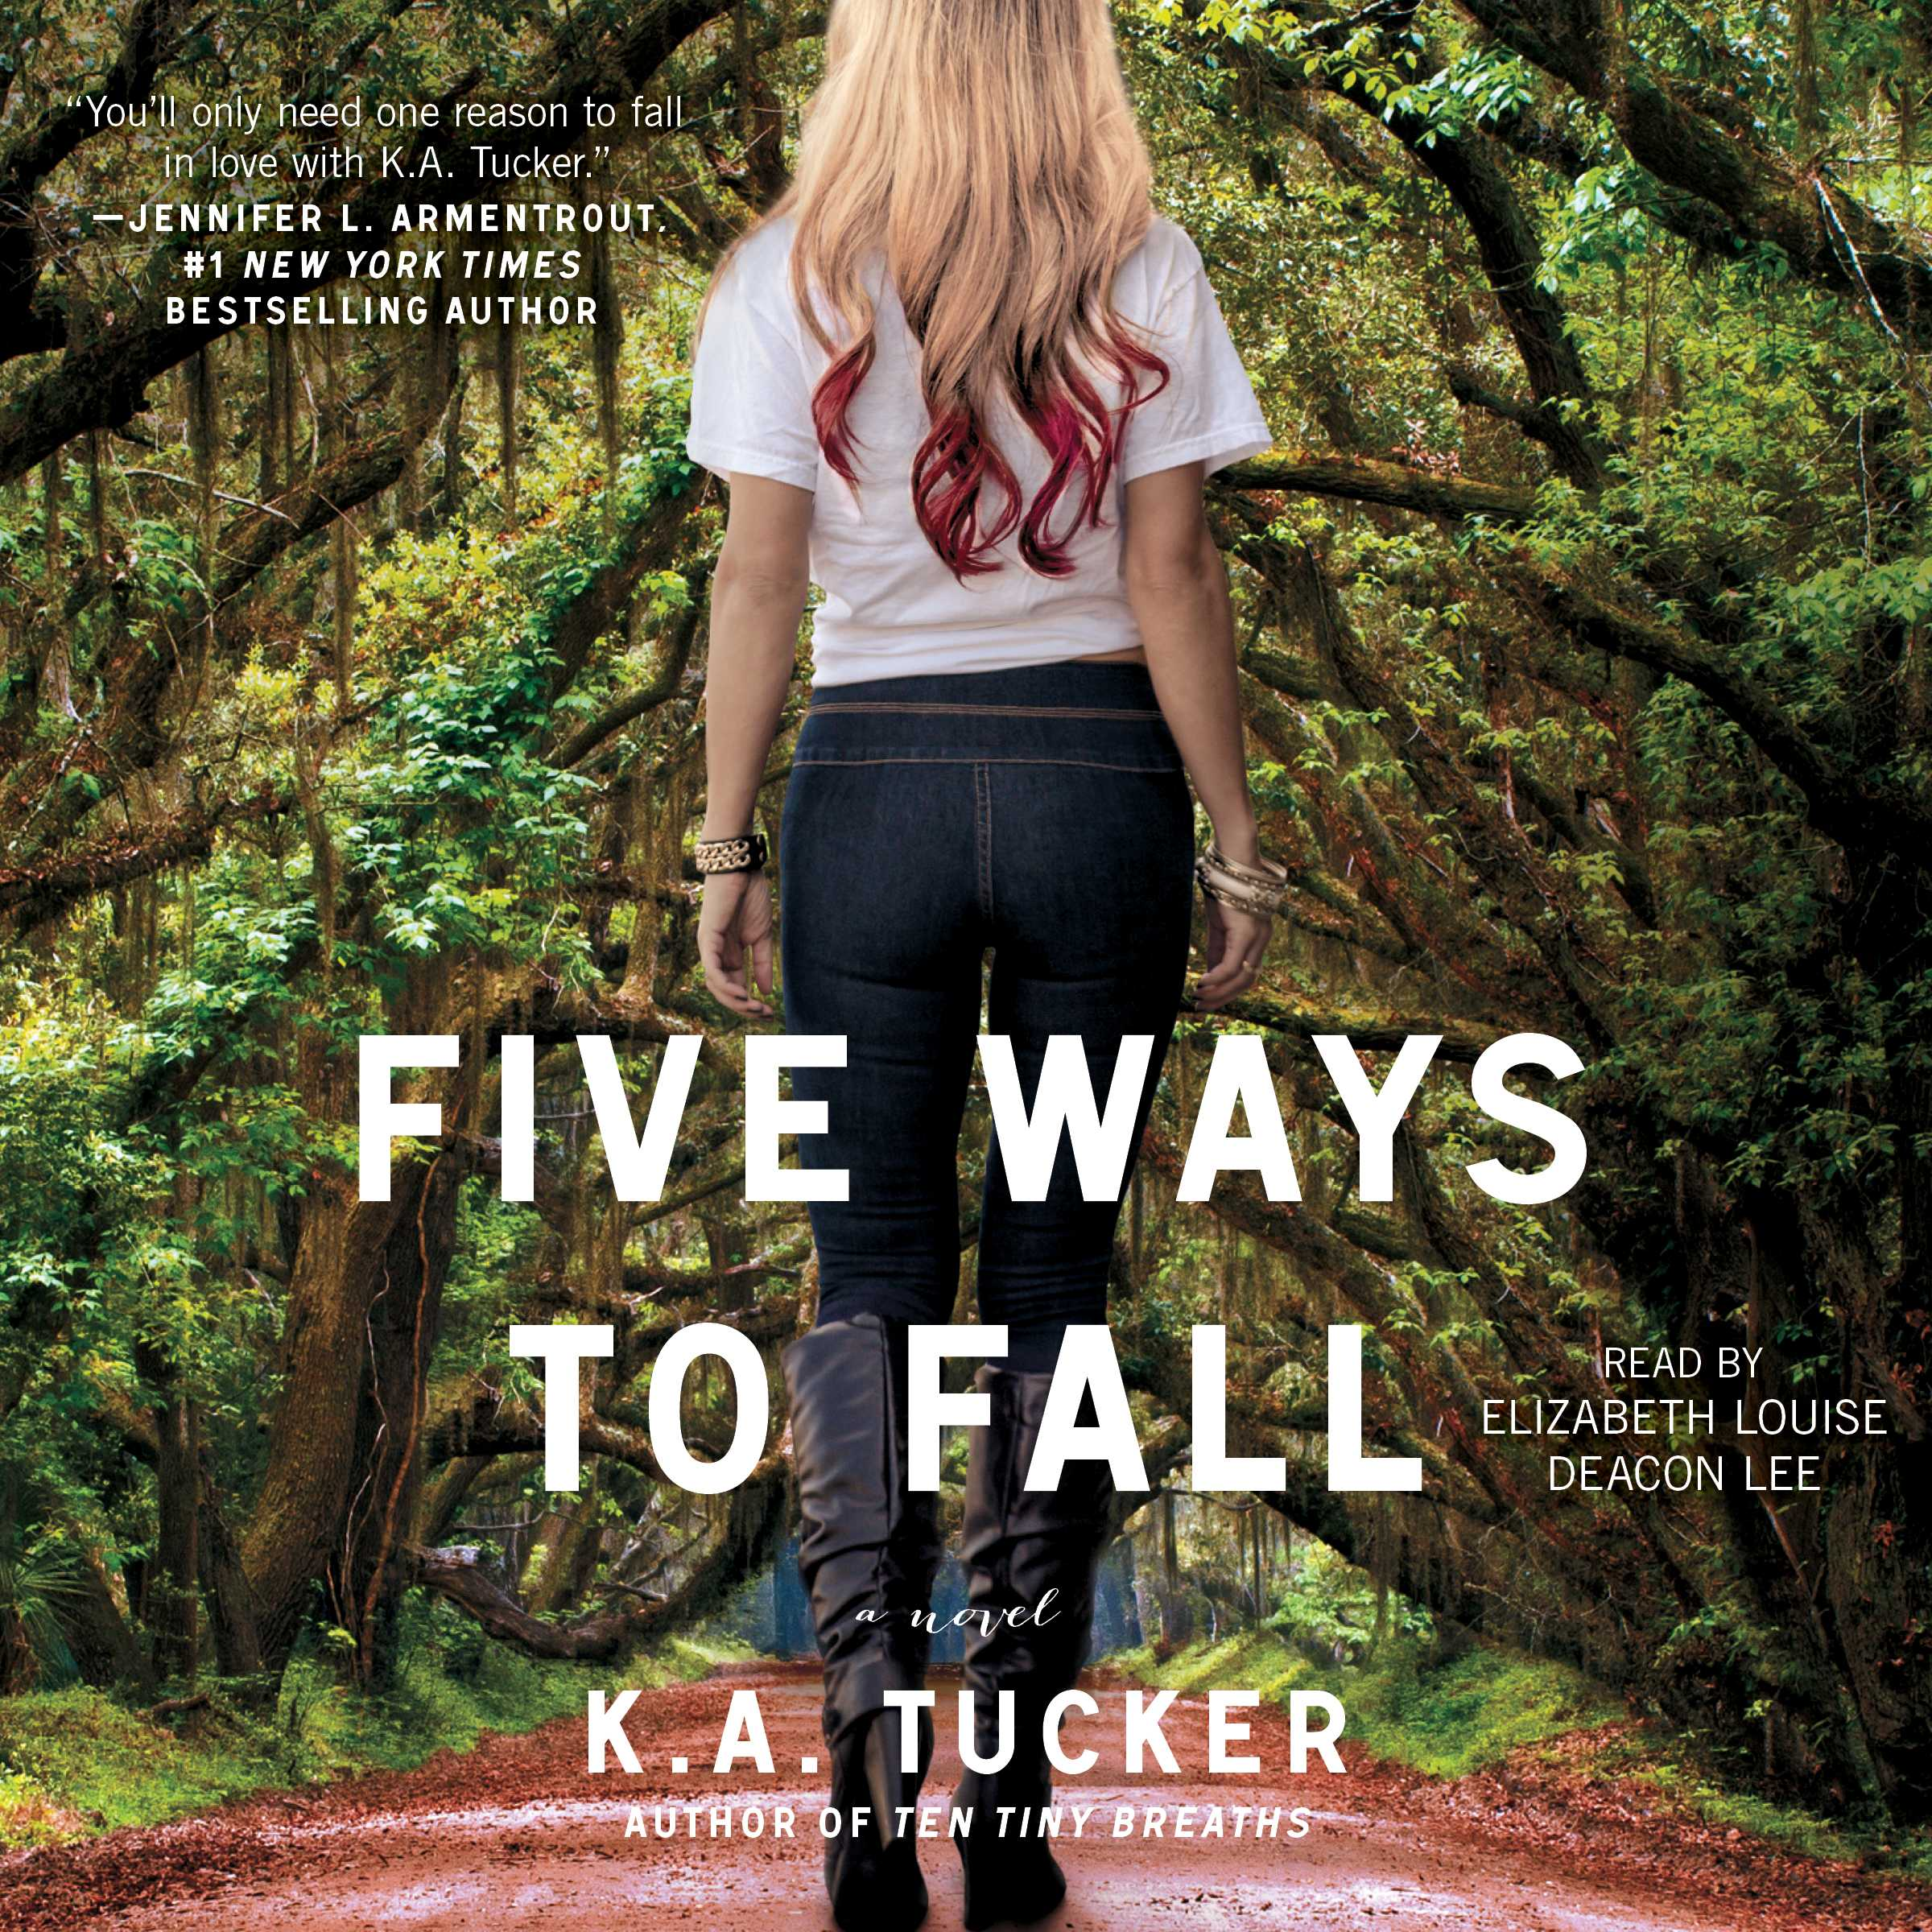 Five-ways-to-fall-9781442369726_hr